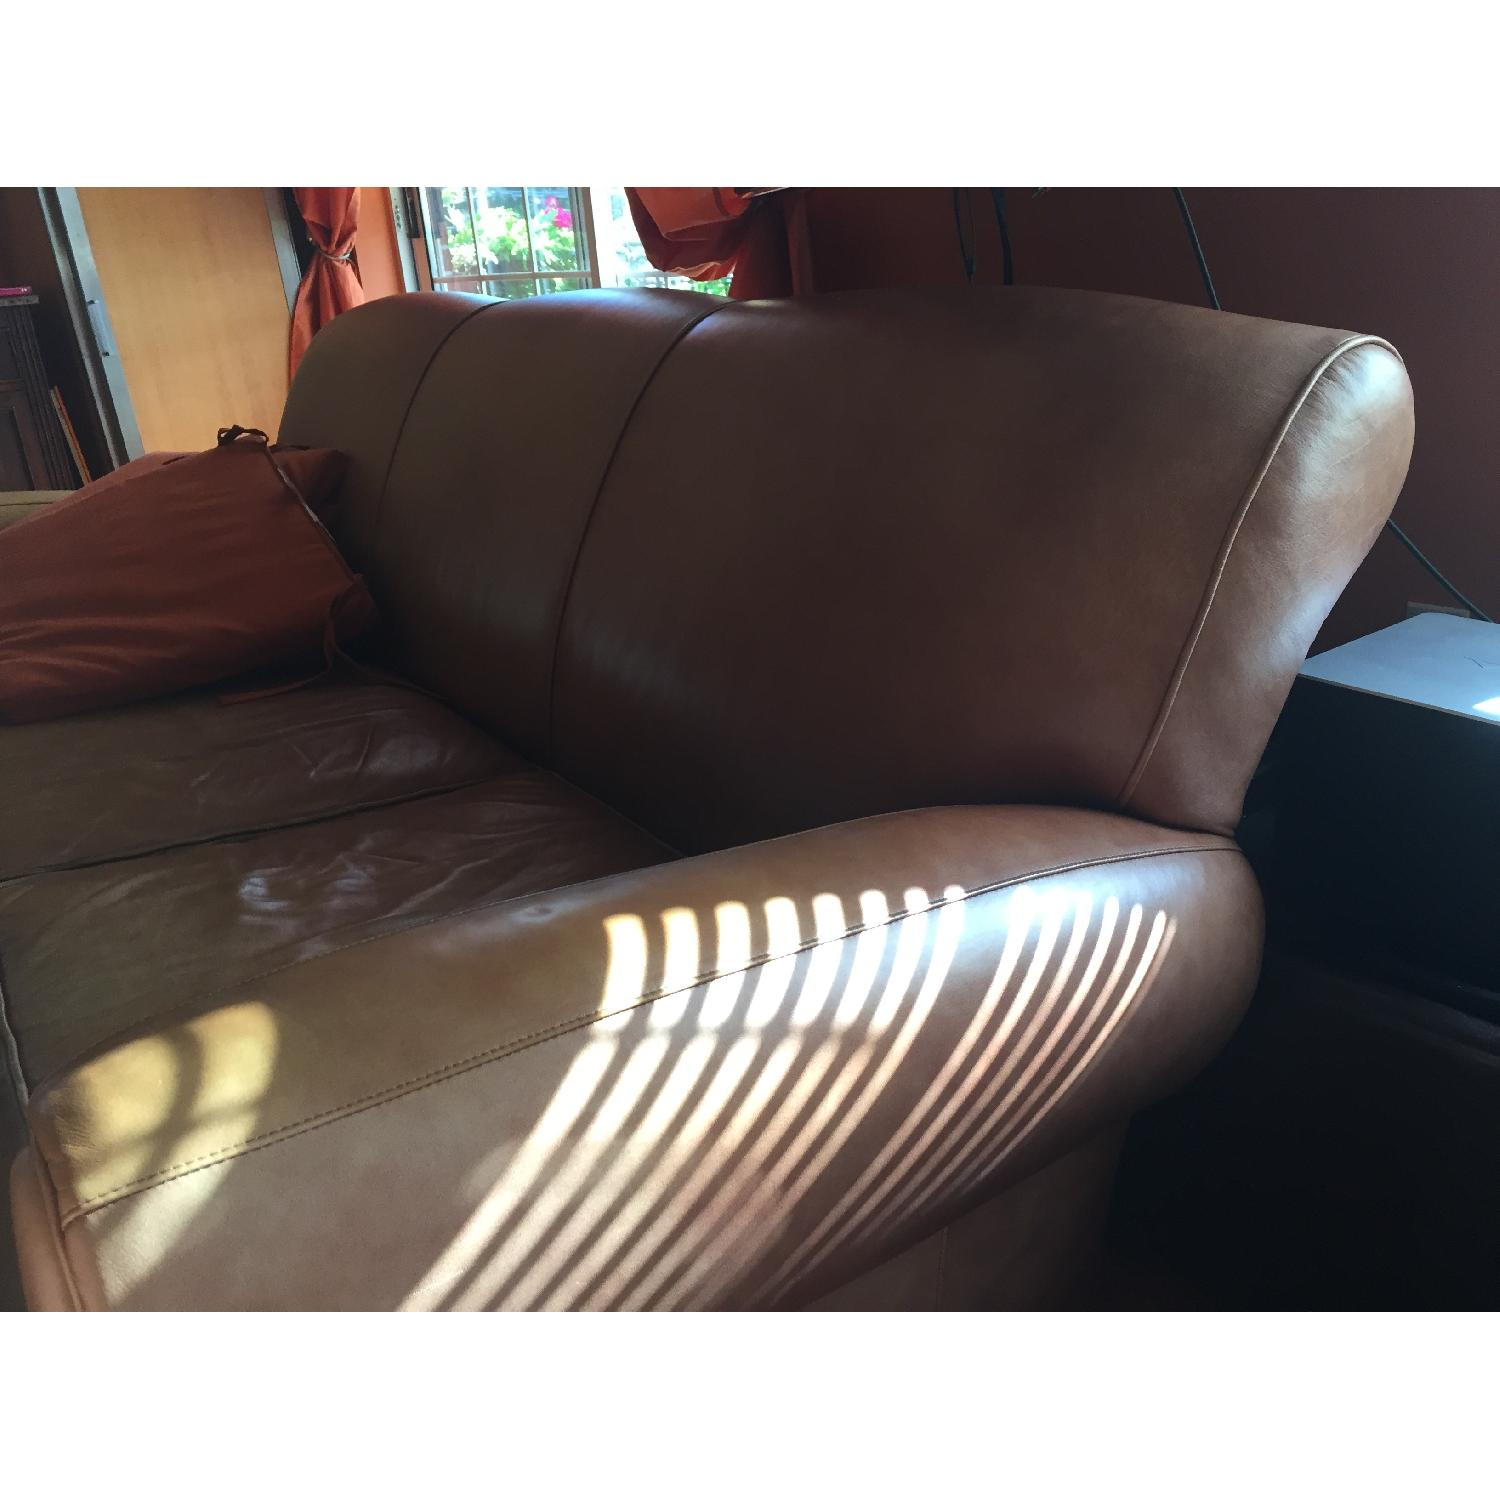 Pottery Barn Manhattan Leather Couch - image-2